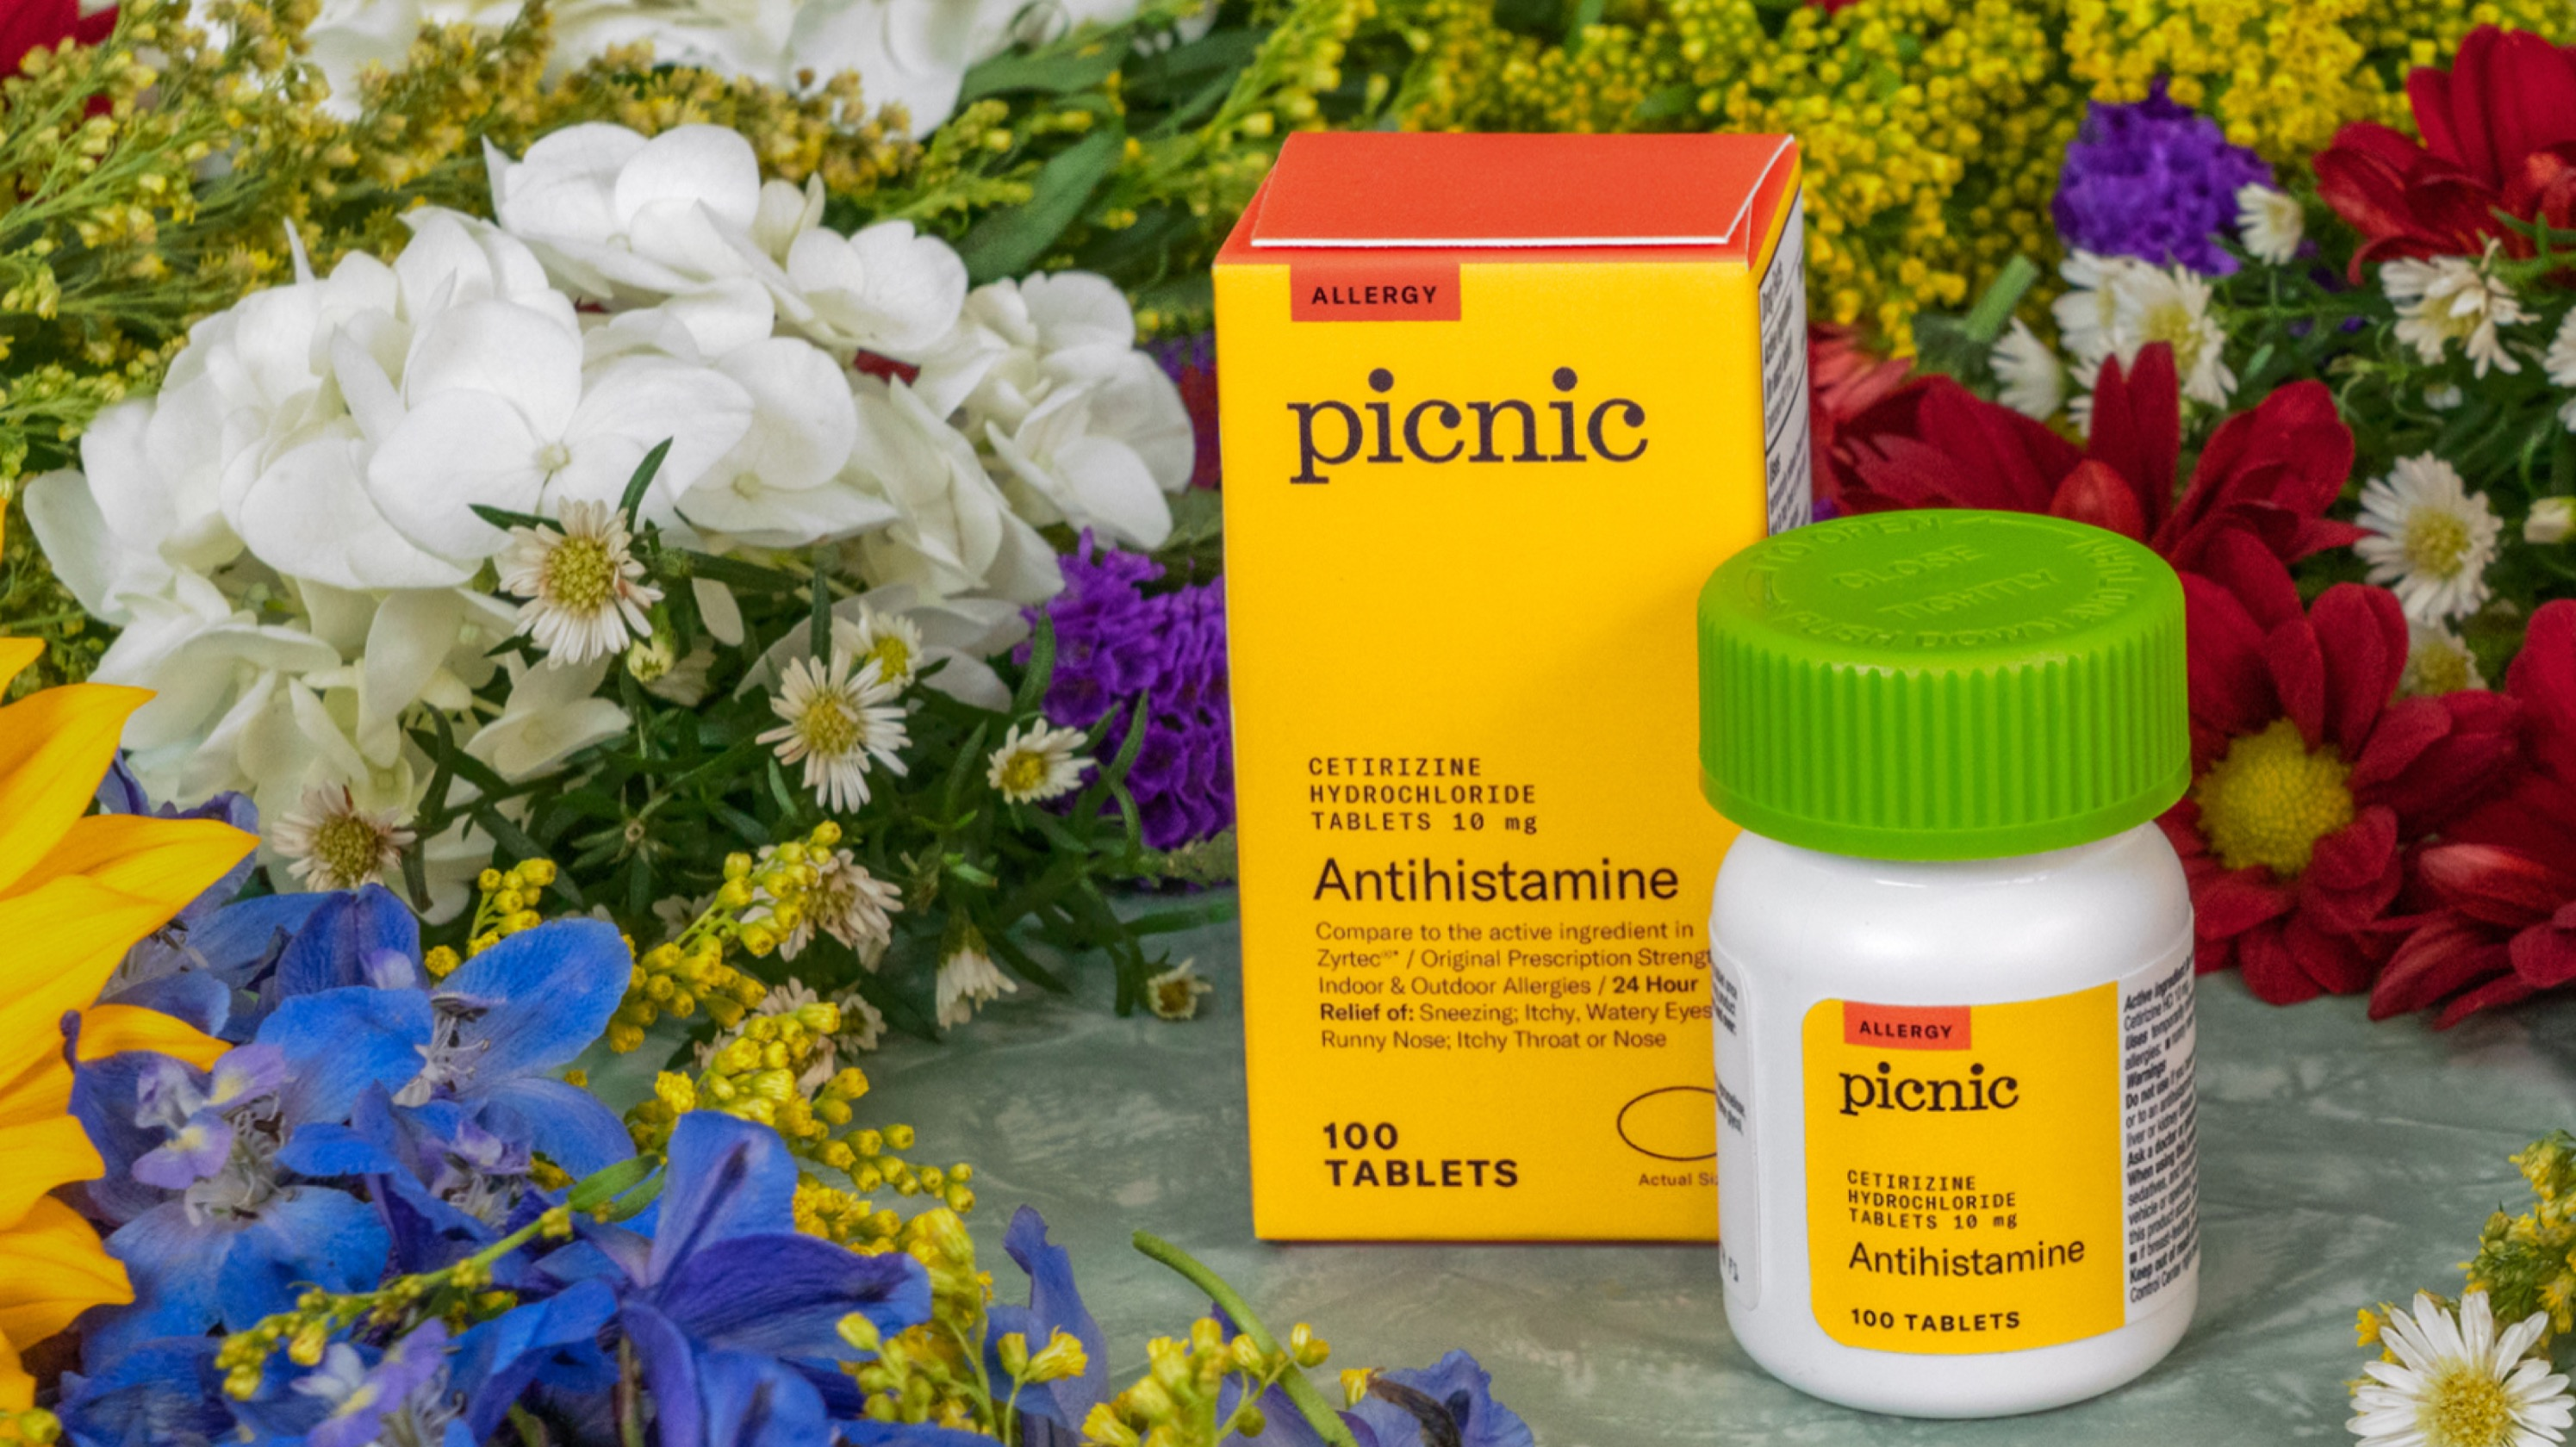 Picnic's over-the-counter antihistamine surrounded by flowers.